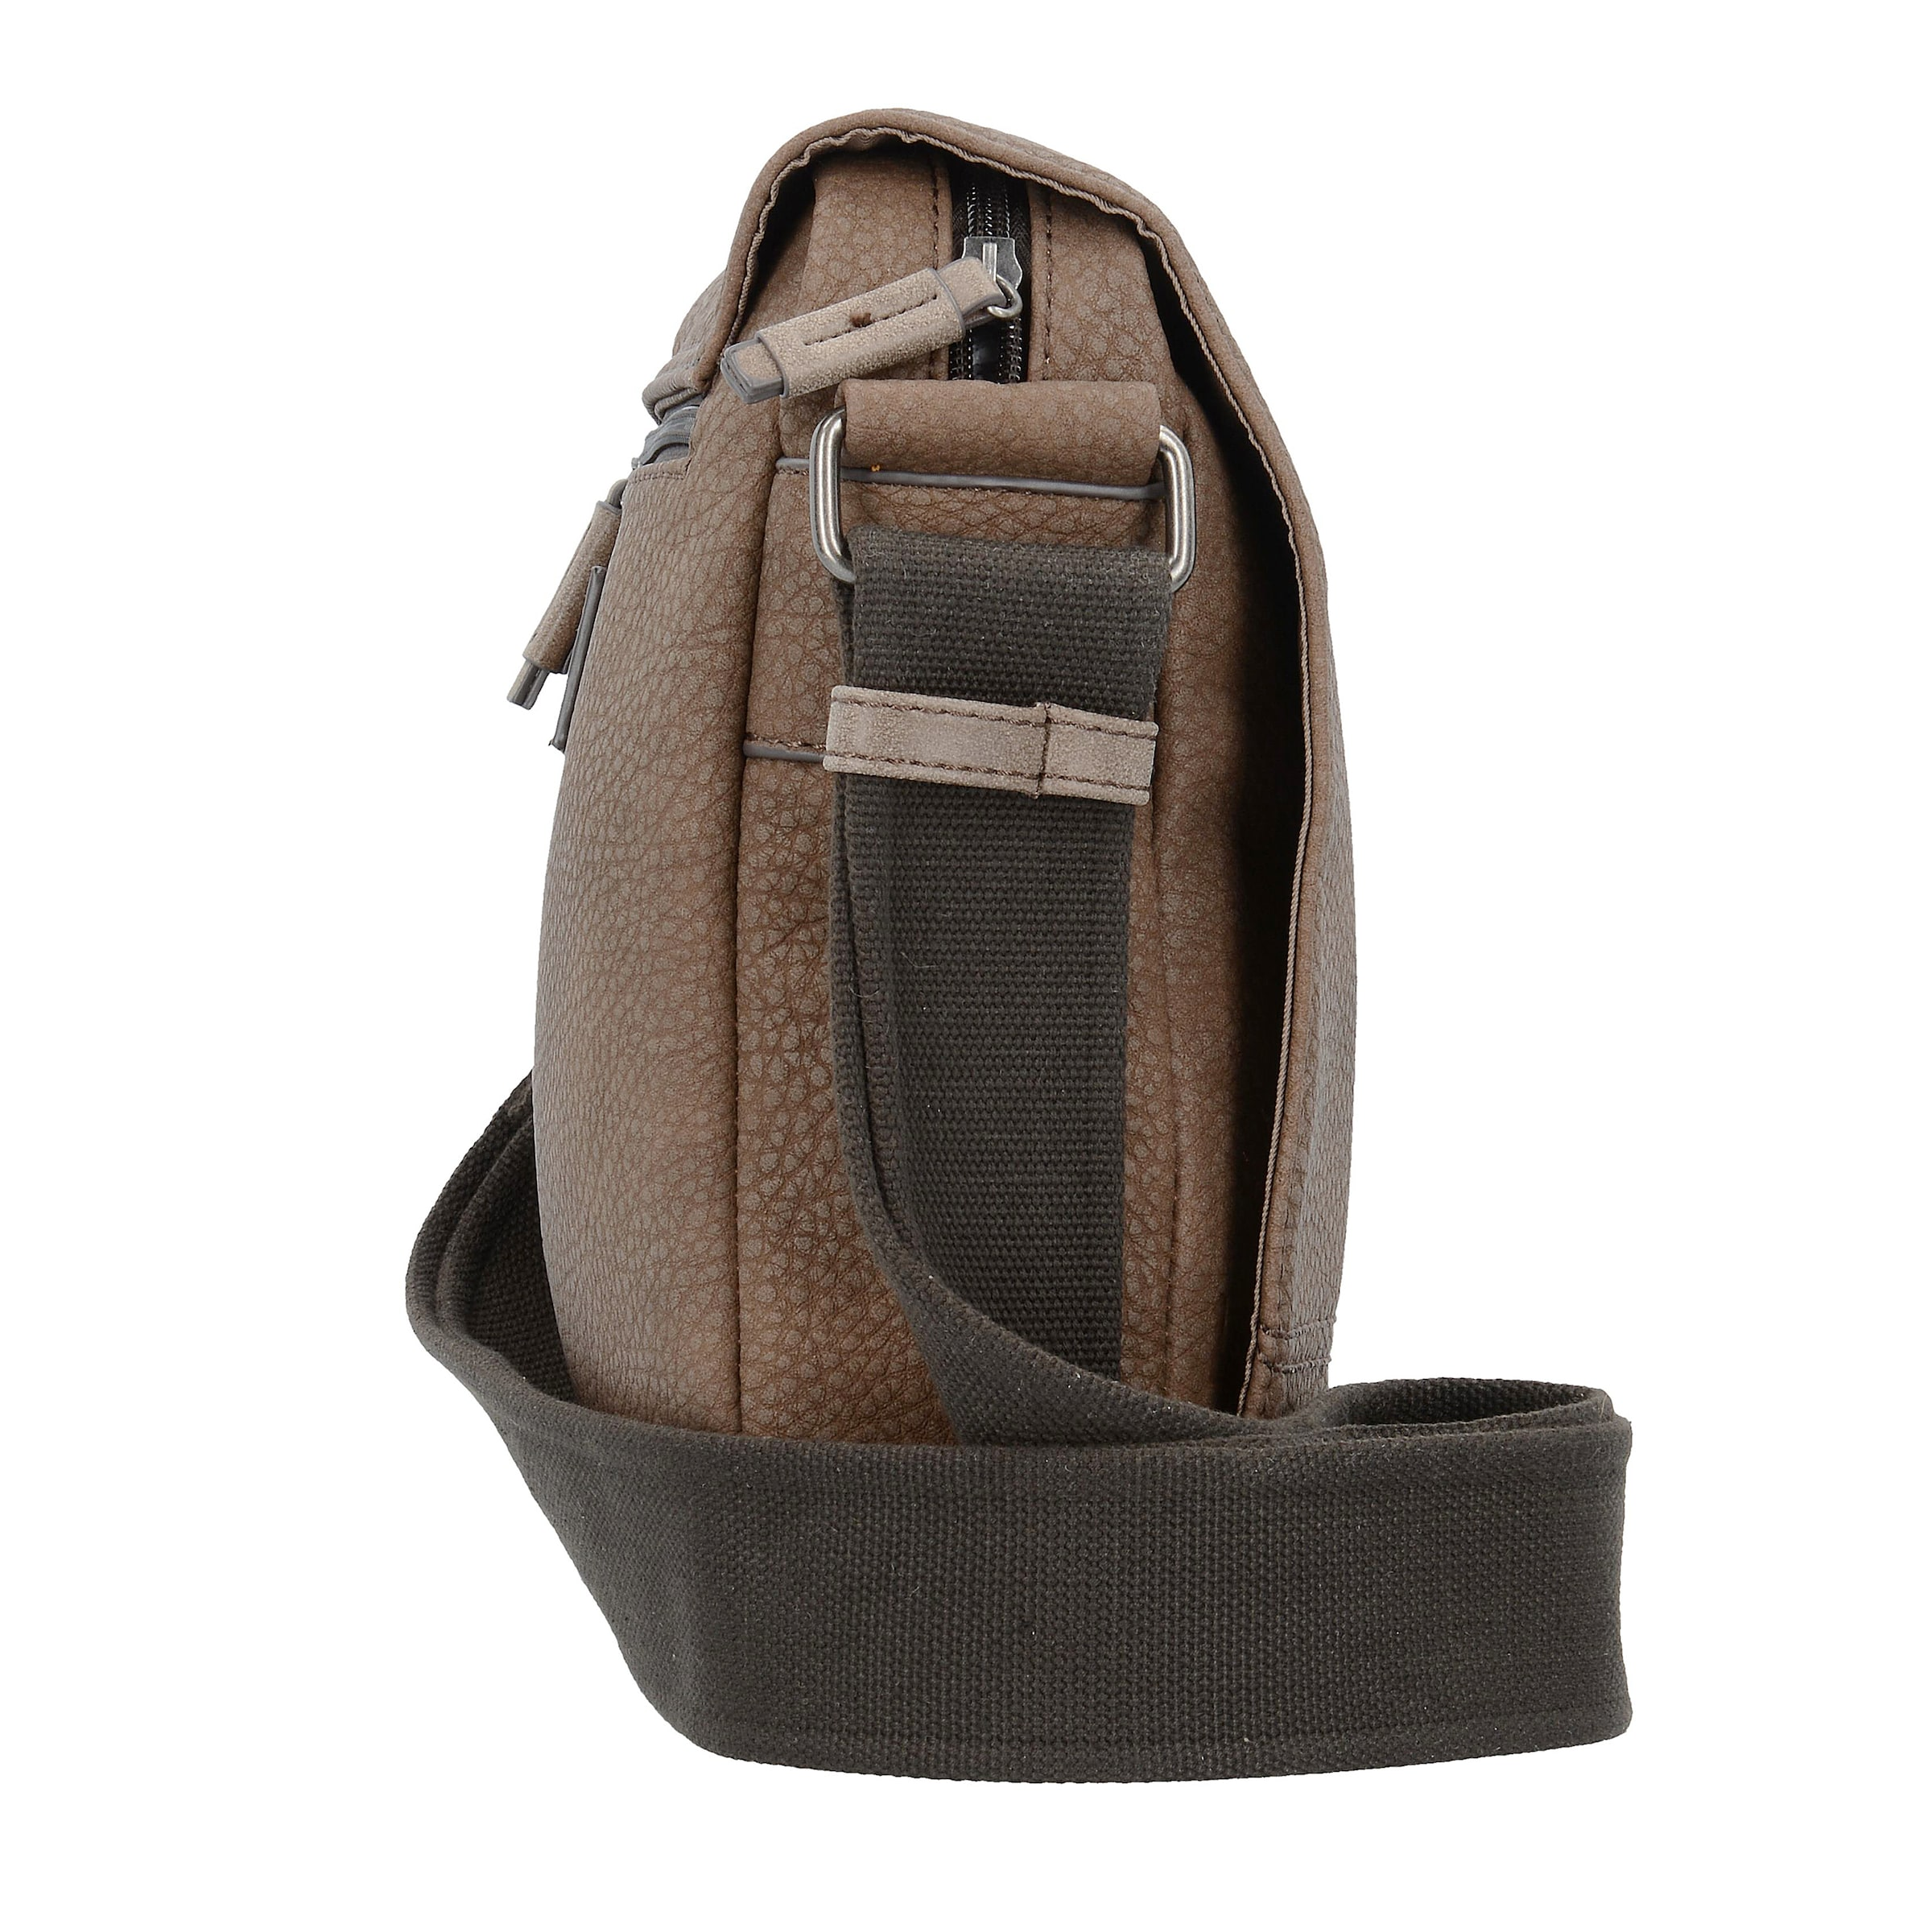 Umhängetasche In Camel Saigon Braun Bag Mini Active 19 Cm l1JcTFK3